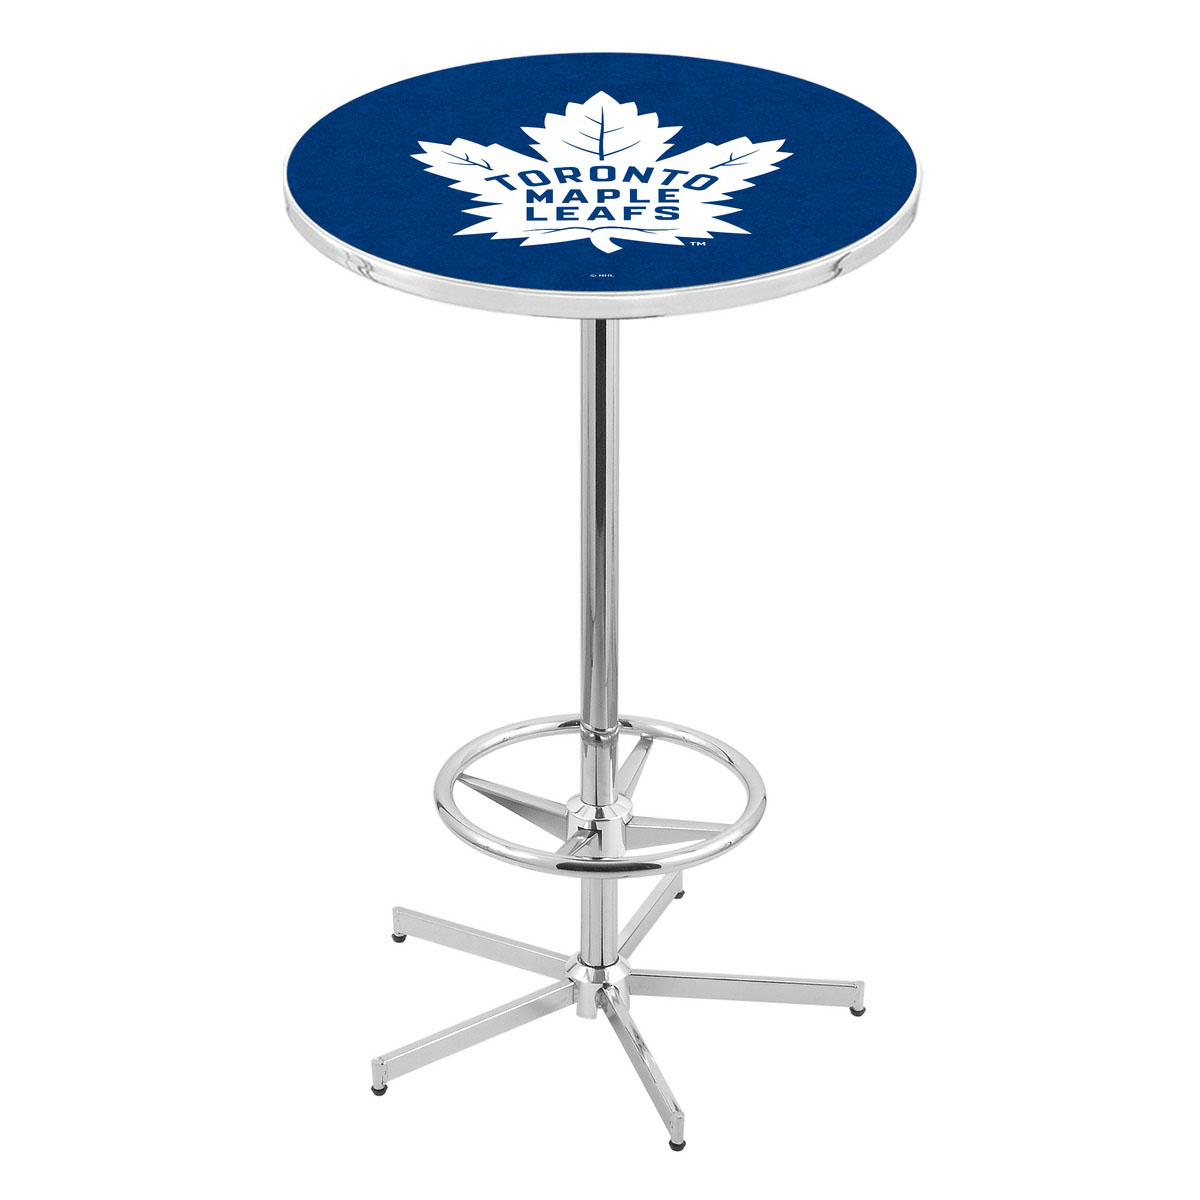 High-class Chrome Toronto Leafs Pub Table Product Photo